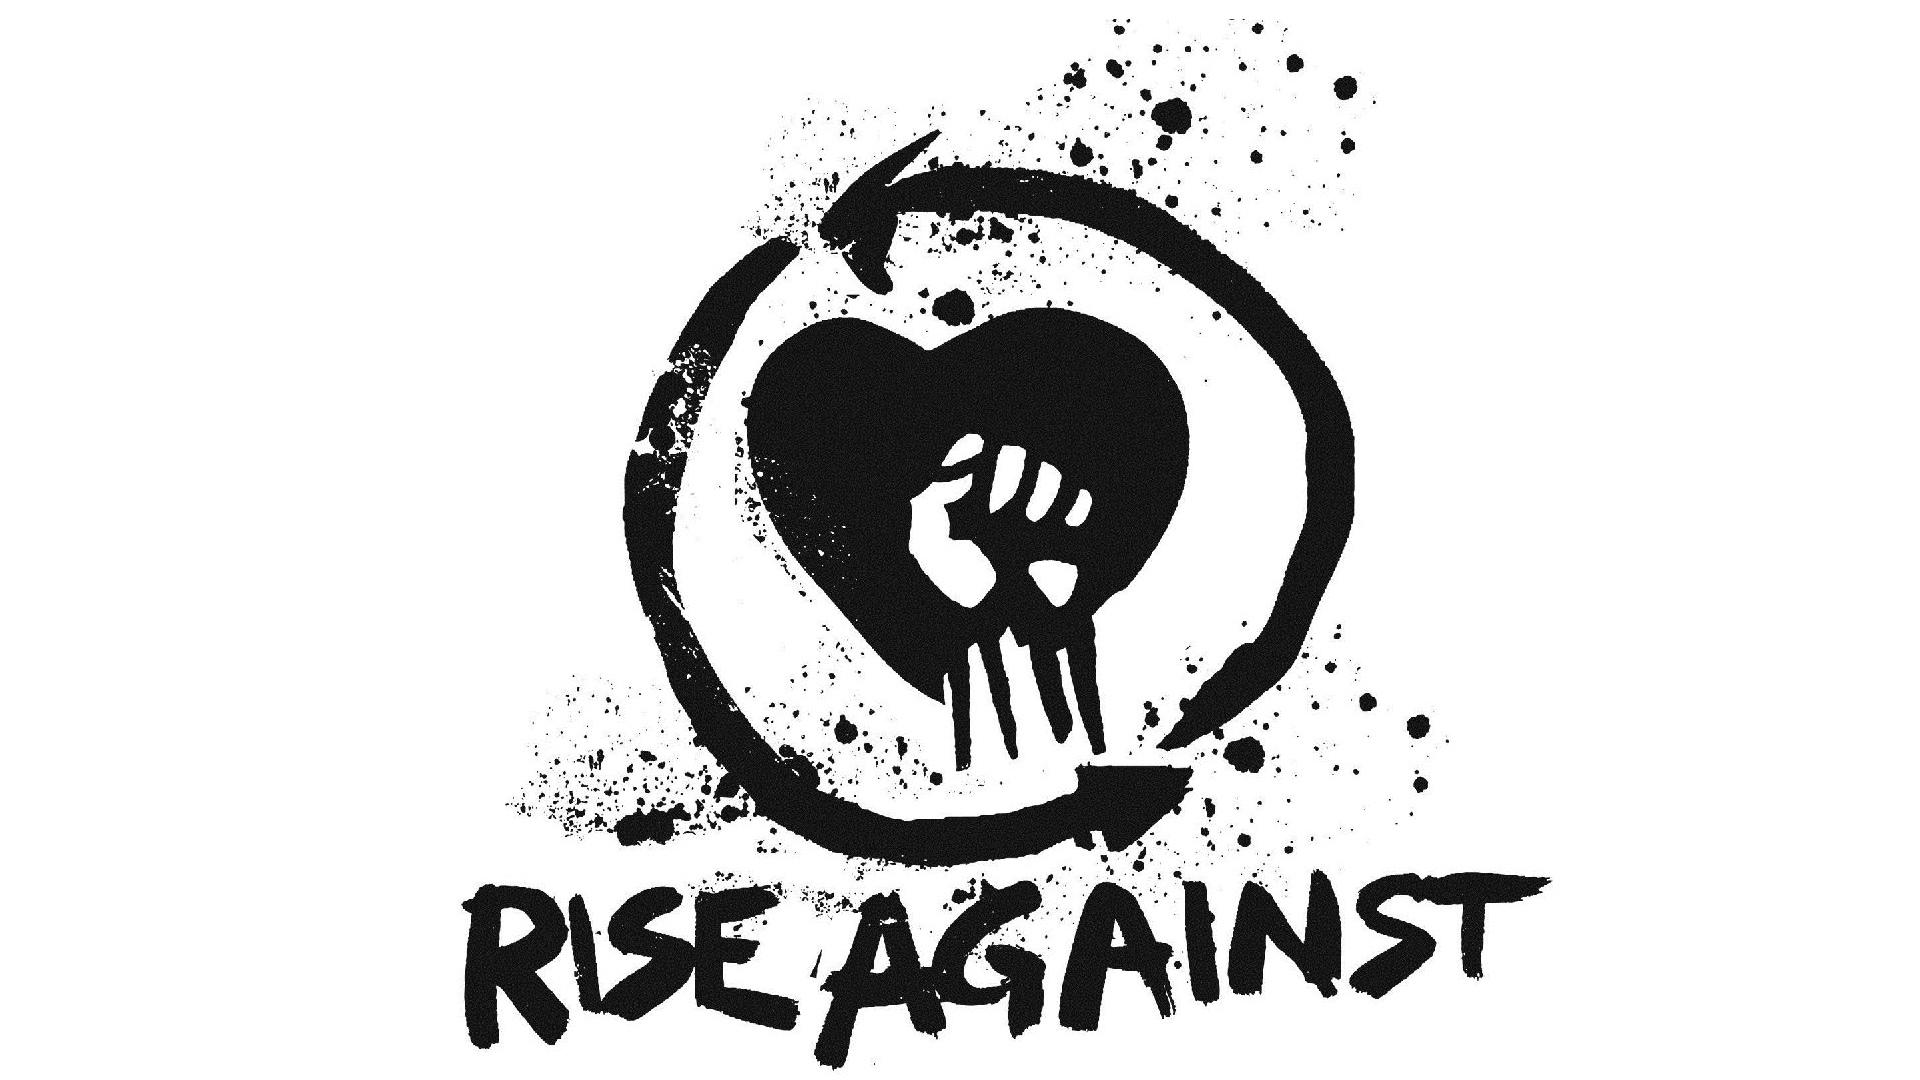 Rise Against wallpapers HD quality